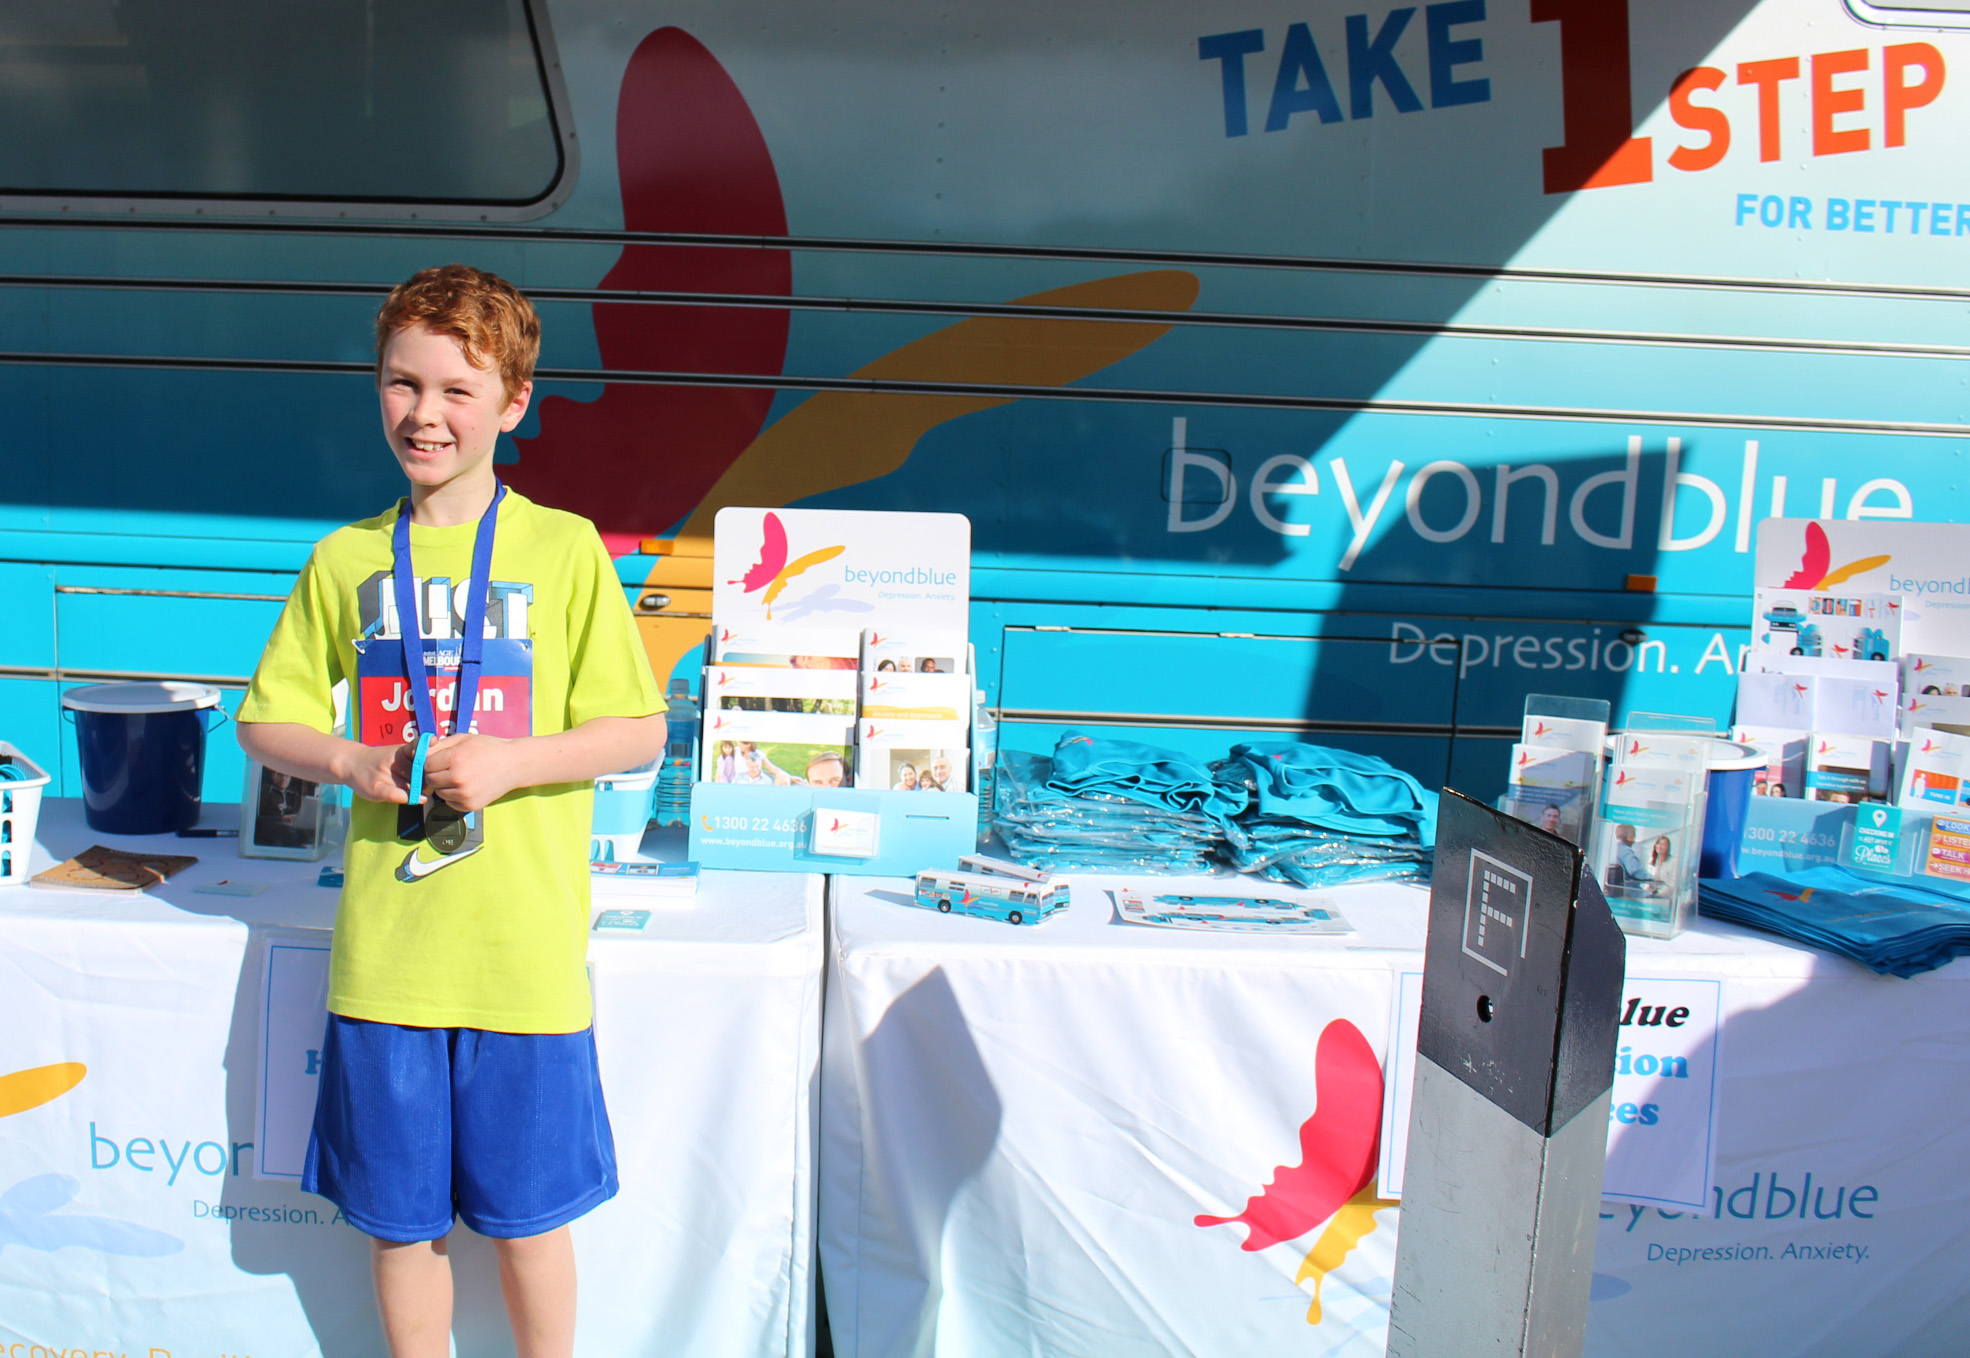 10-year-old Jordan ran the 10km race and raised $600 for Beyond Blue!